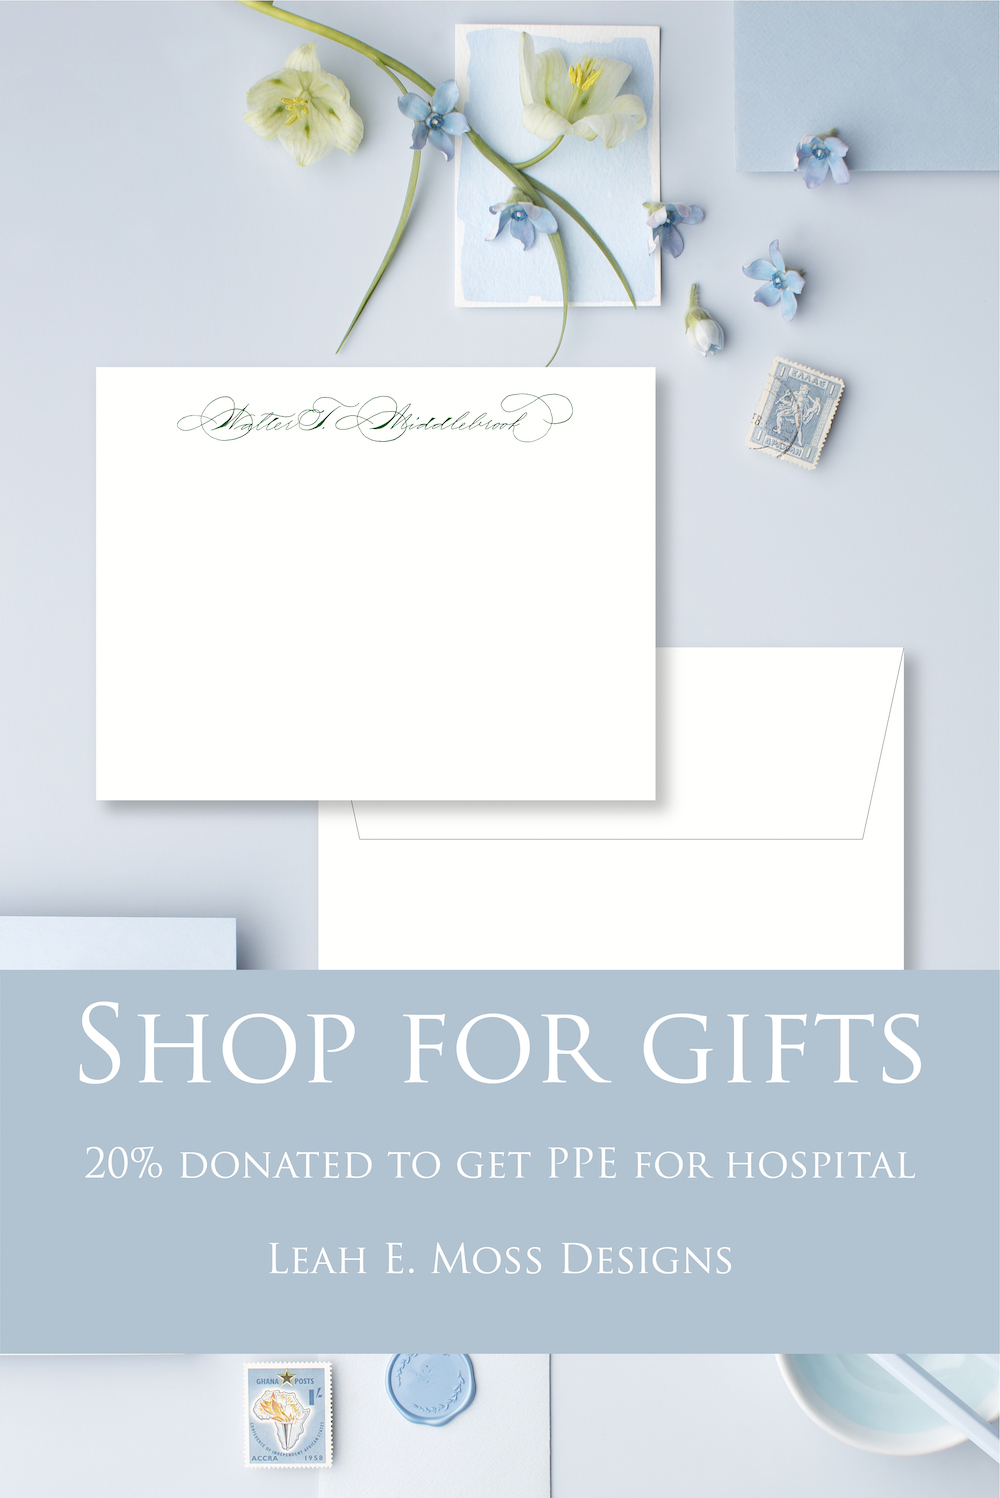 Shop for gifts to raise someone's spirits and help get much needed PPE for Detroit hospital - Leah E. Moss Designs